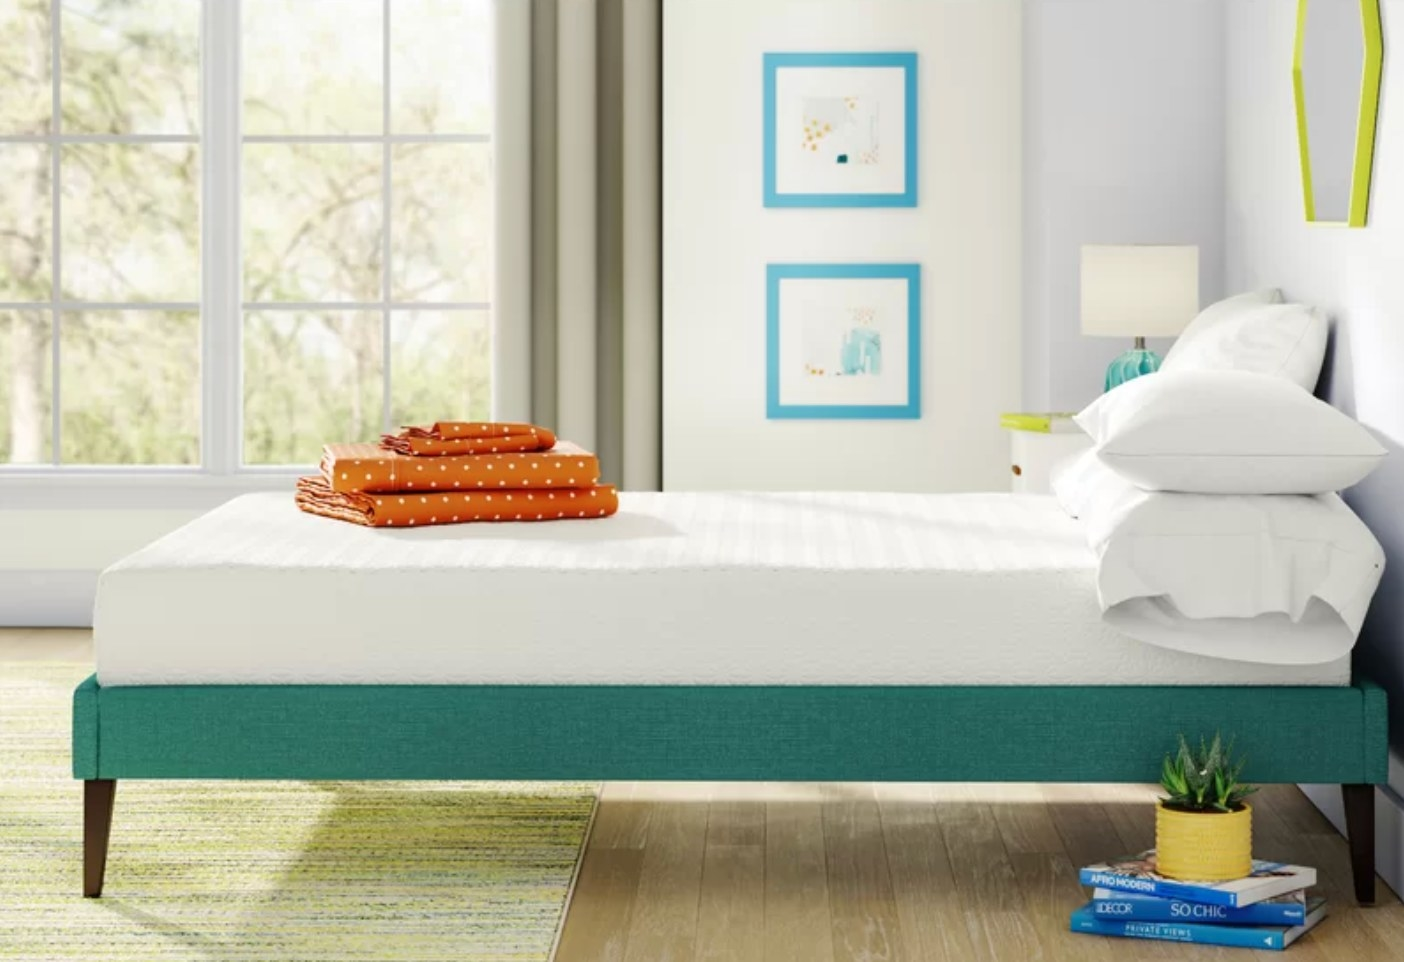 The memory foam mattress sitting atop a bed frame with folded linens at the end of the bed